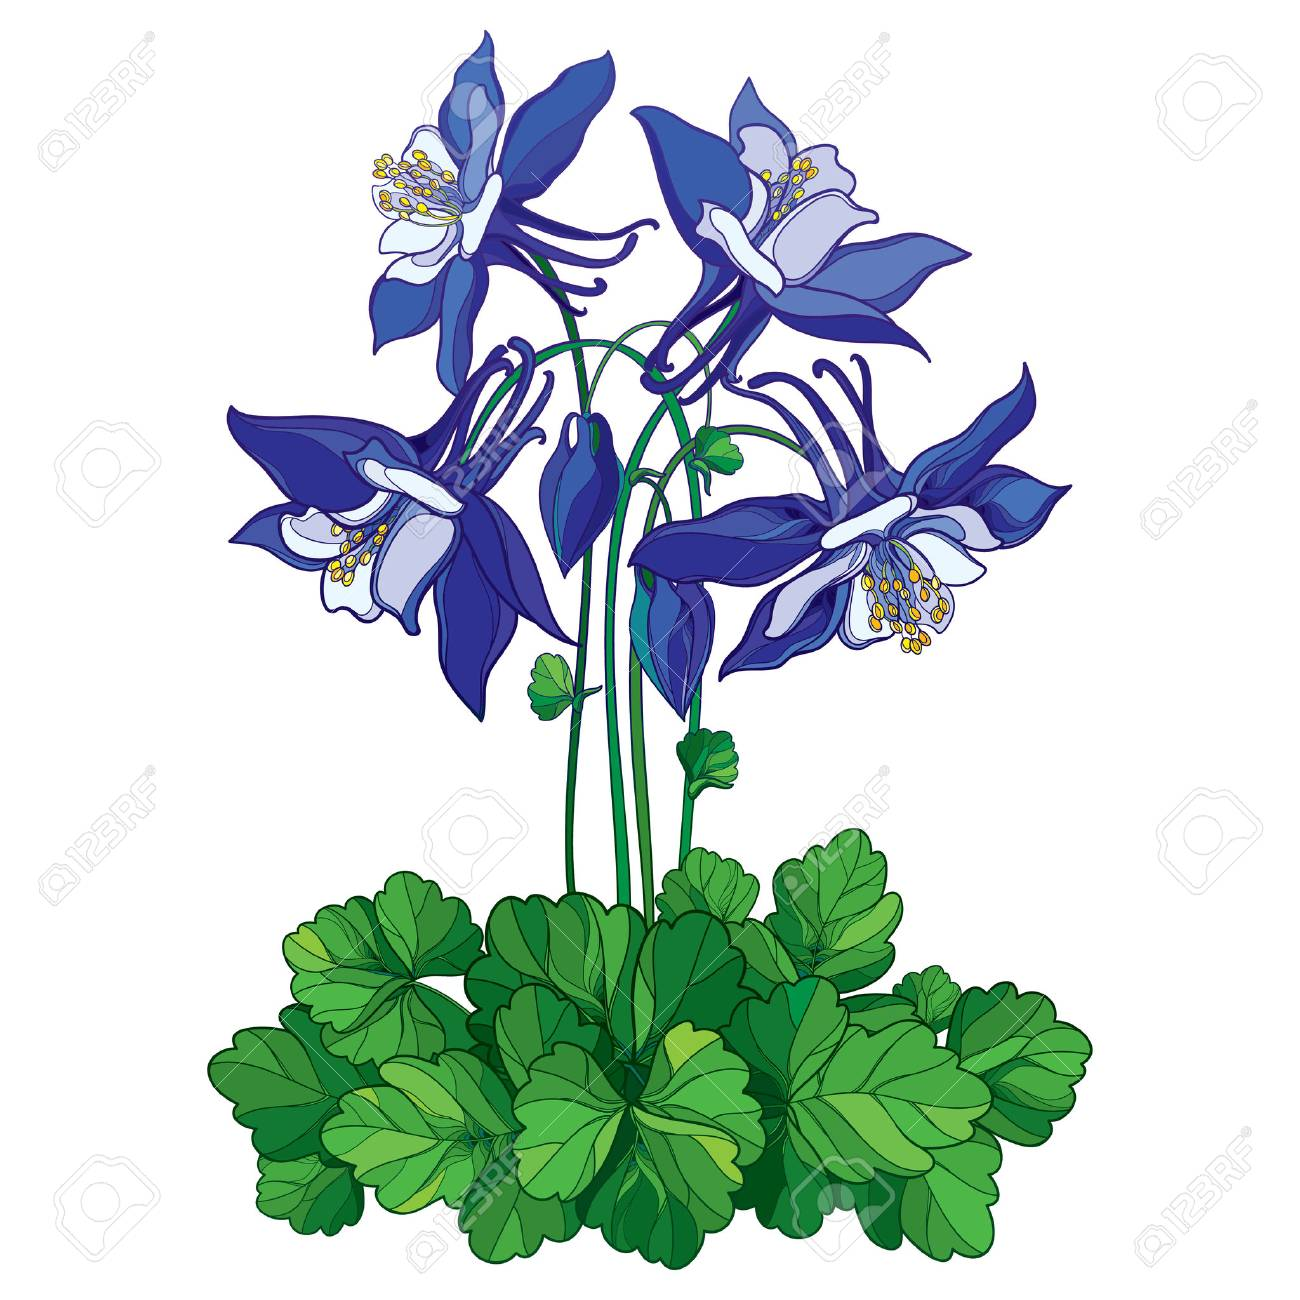 372 columbine flower stock illustrations cliparts and royalty free bouquet with outline ornate aquilegia or columbine flower in blue bud and green leaf isolated izmirmasajfo